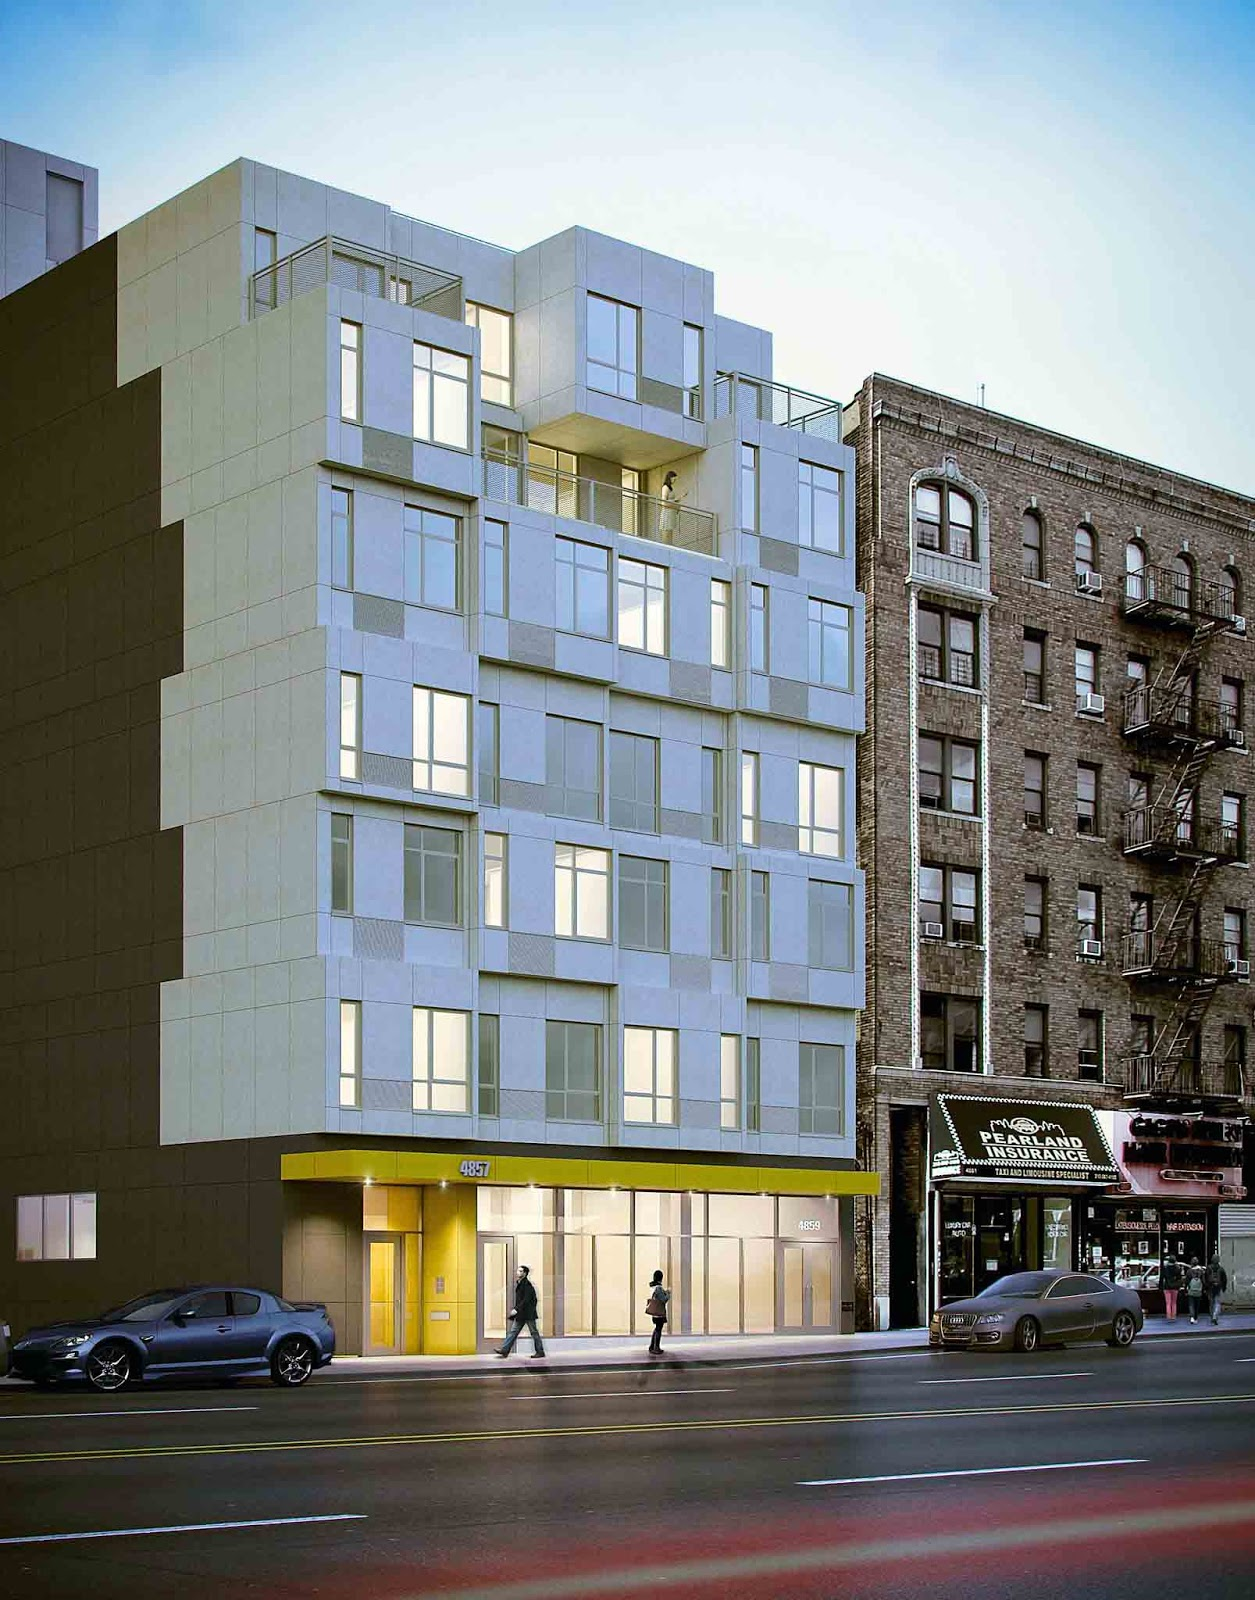 New York Real Estate Is The New Swiss Bank Account: NEW YORK CITY'S FIRST MODULAR APARTMENTS